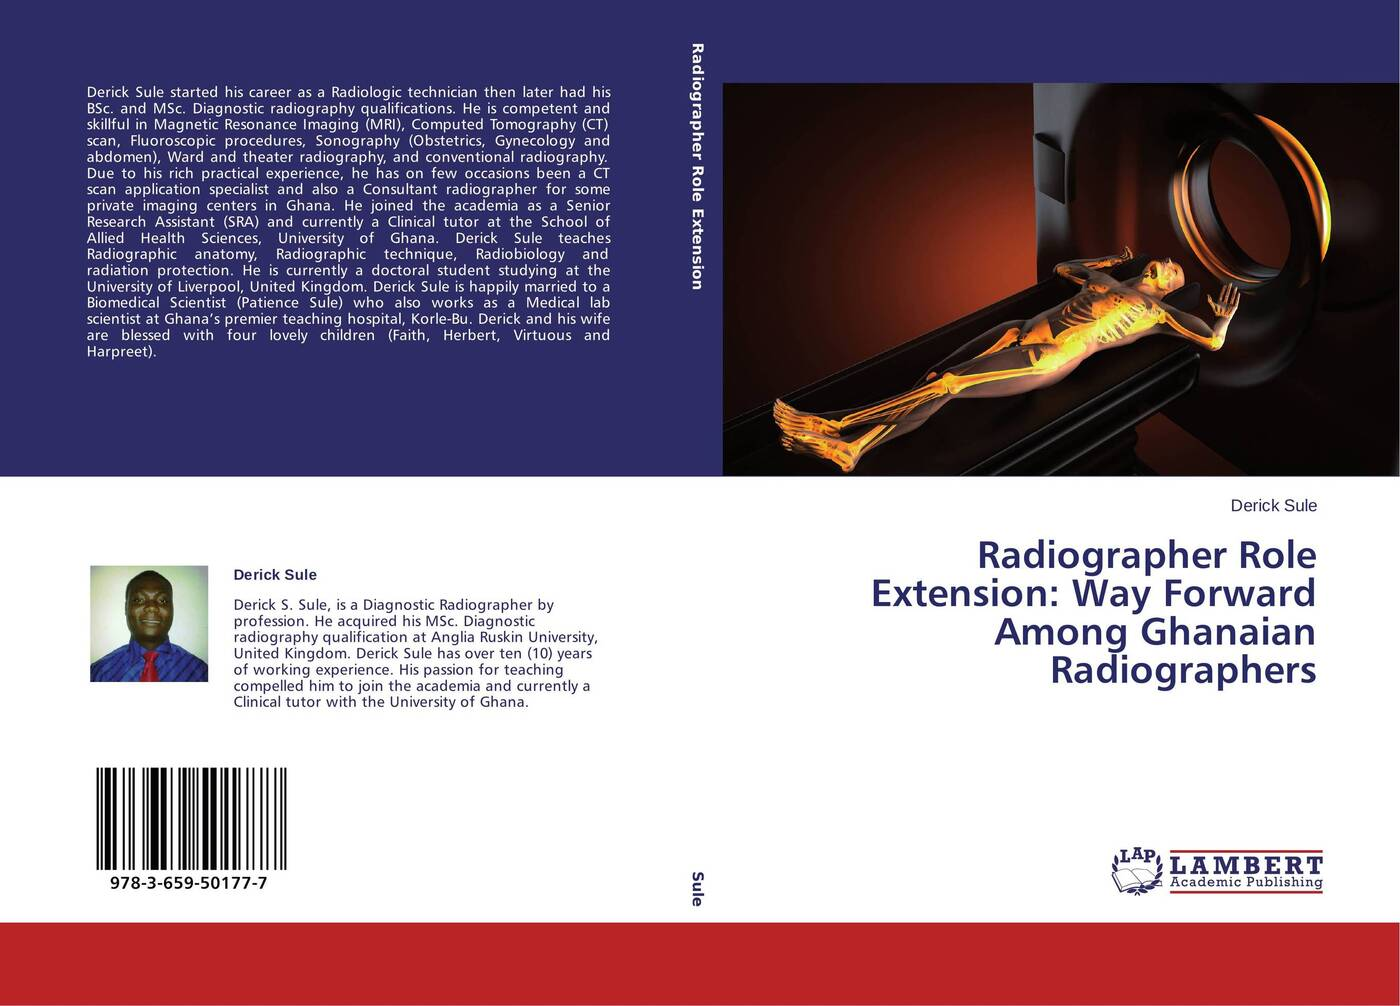 Derick Sule Radiographer Role Extension: Way Forward Among Ghanaian Radiographers